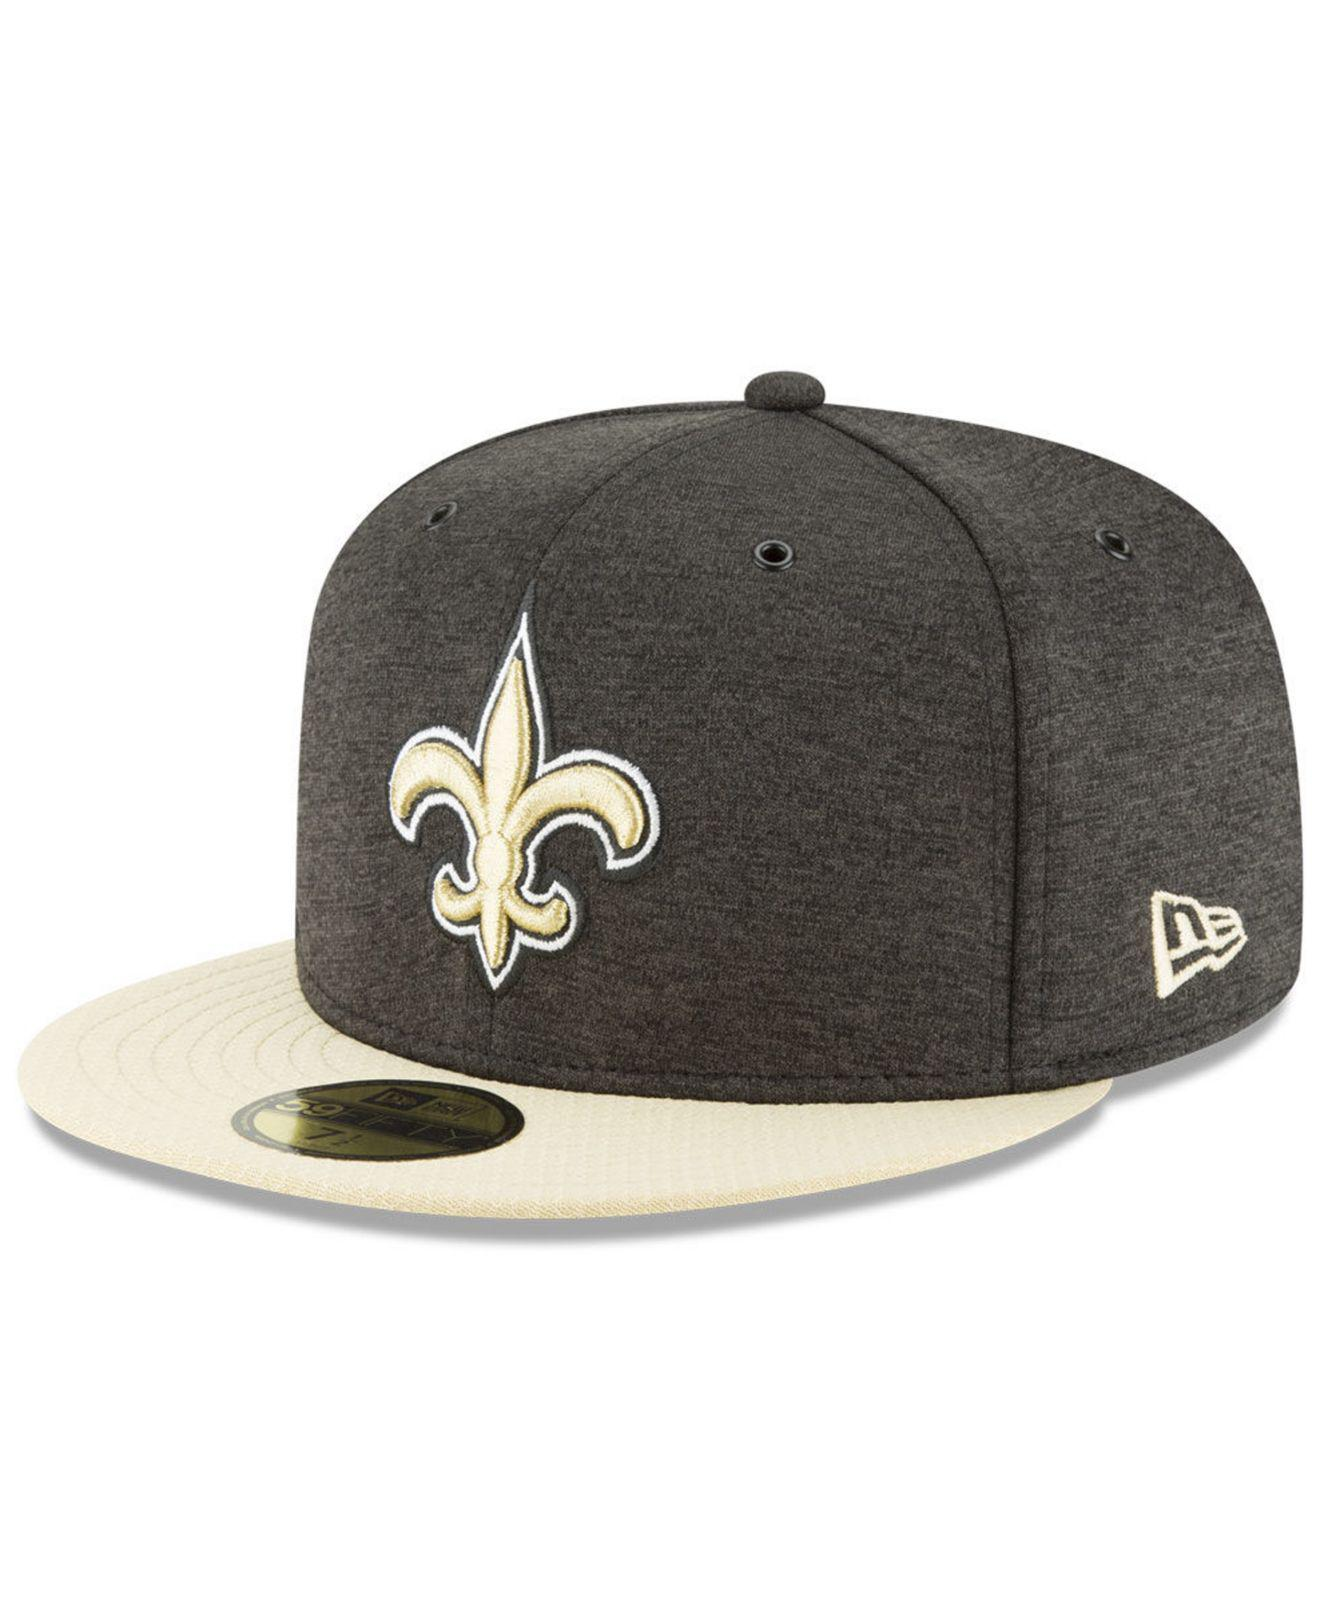 3586baaa2c4 Lyst - KTZ New Orleans Saints On Field Sideline Home 59fifty Fitted ...